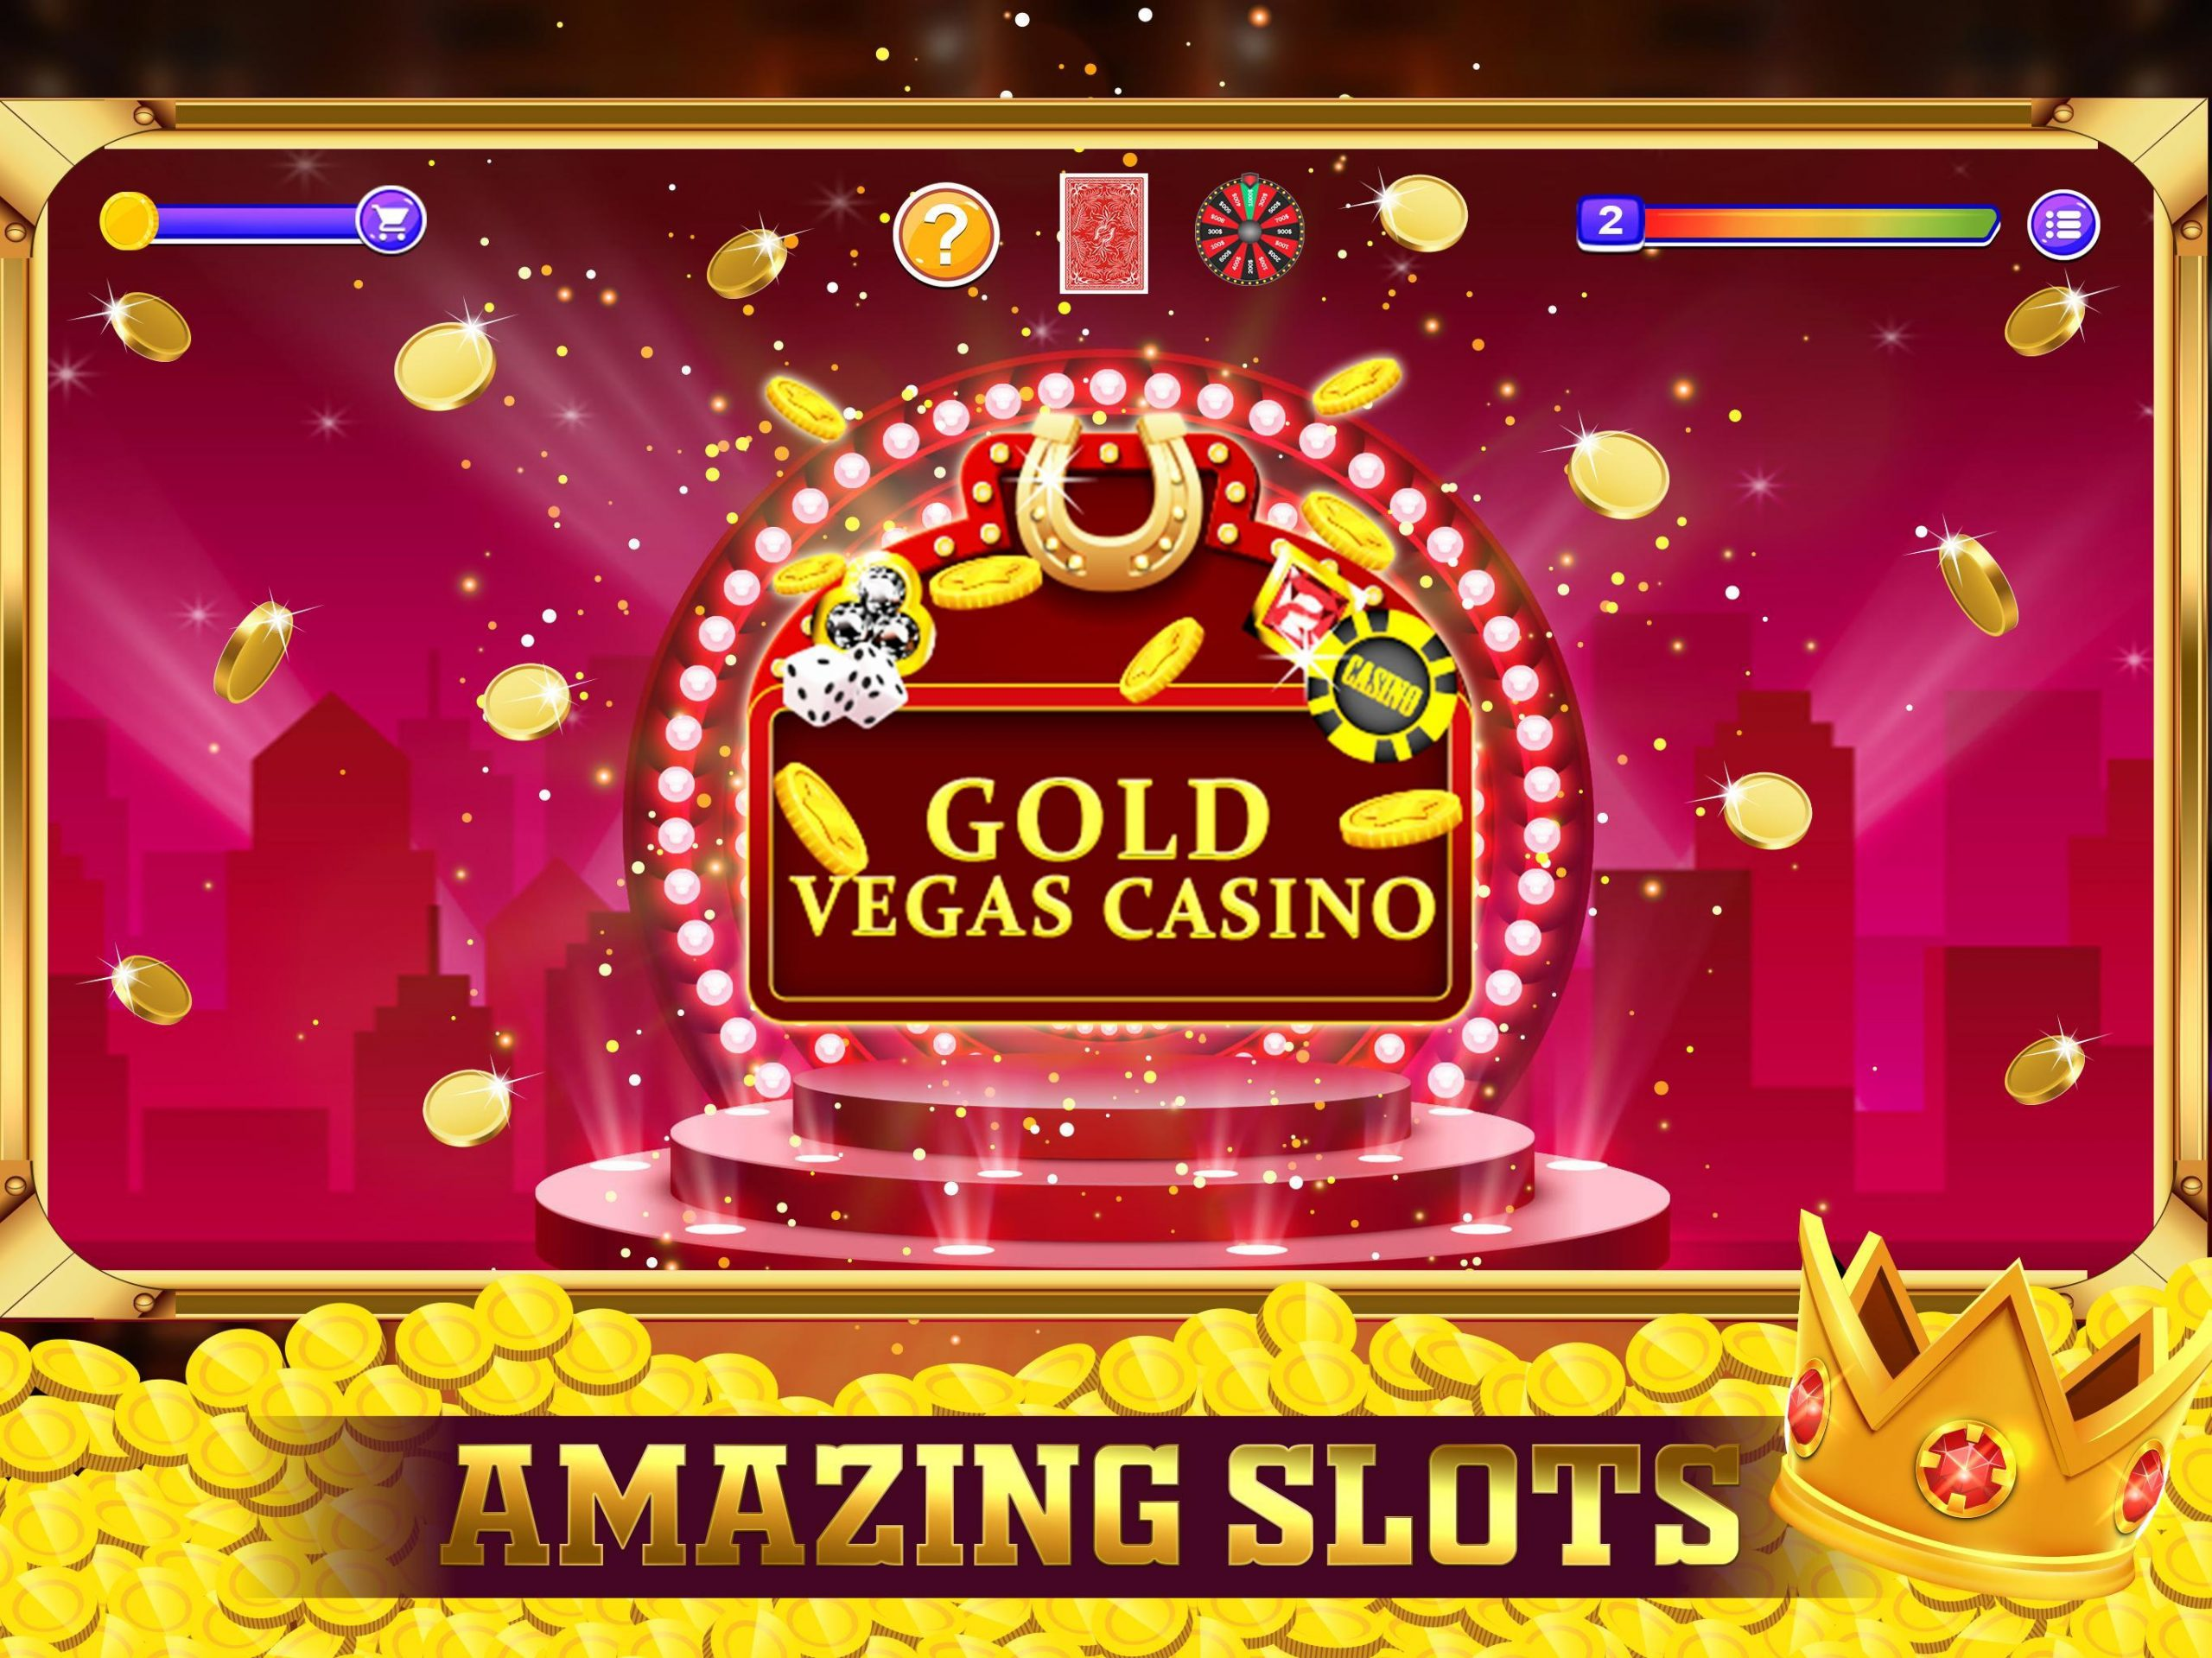 Avis Golden Vegas casino